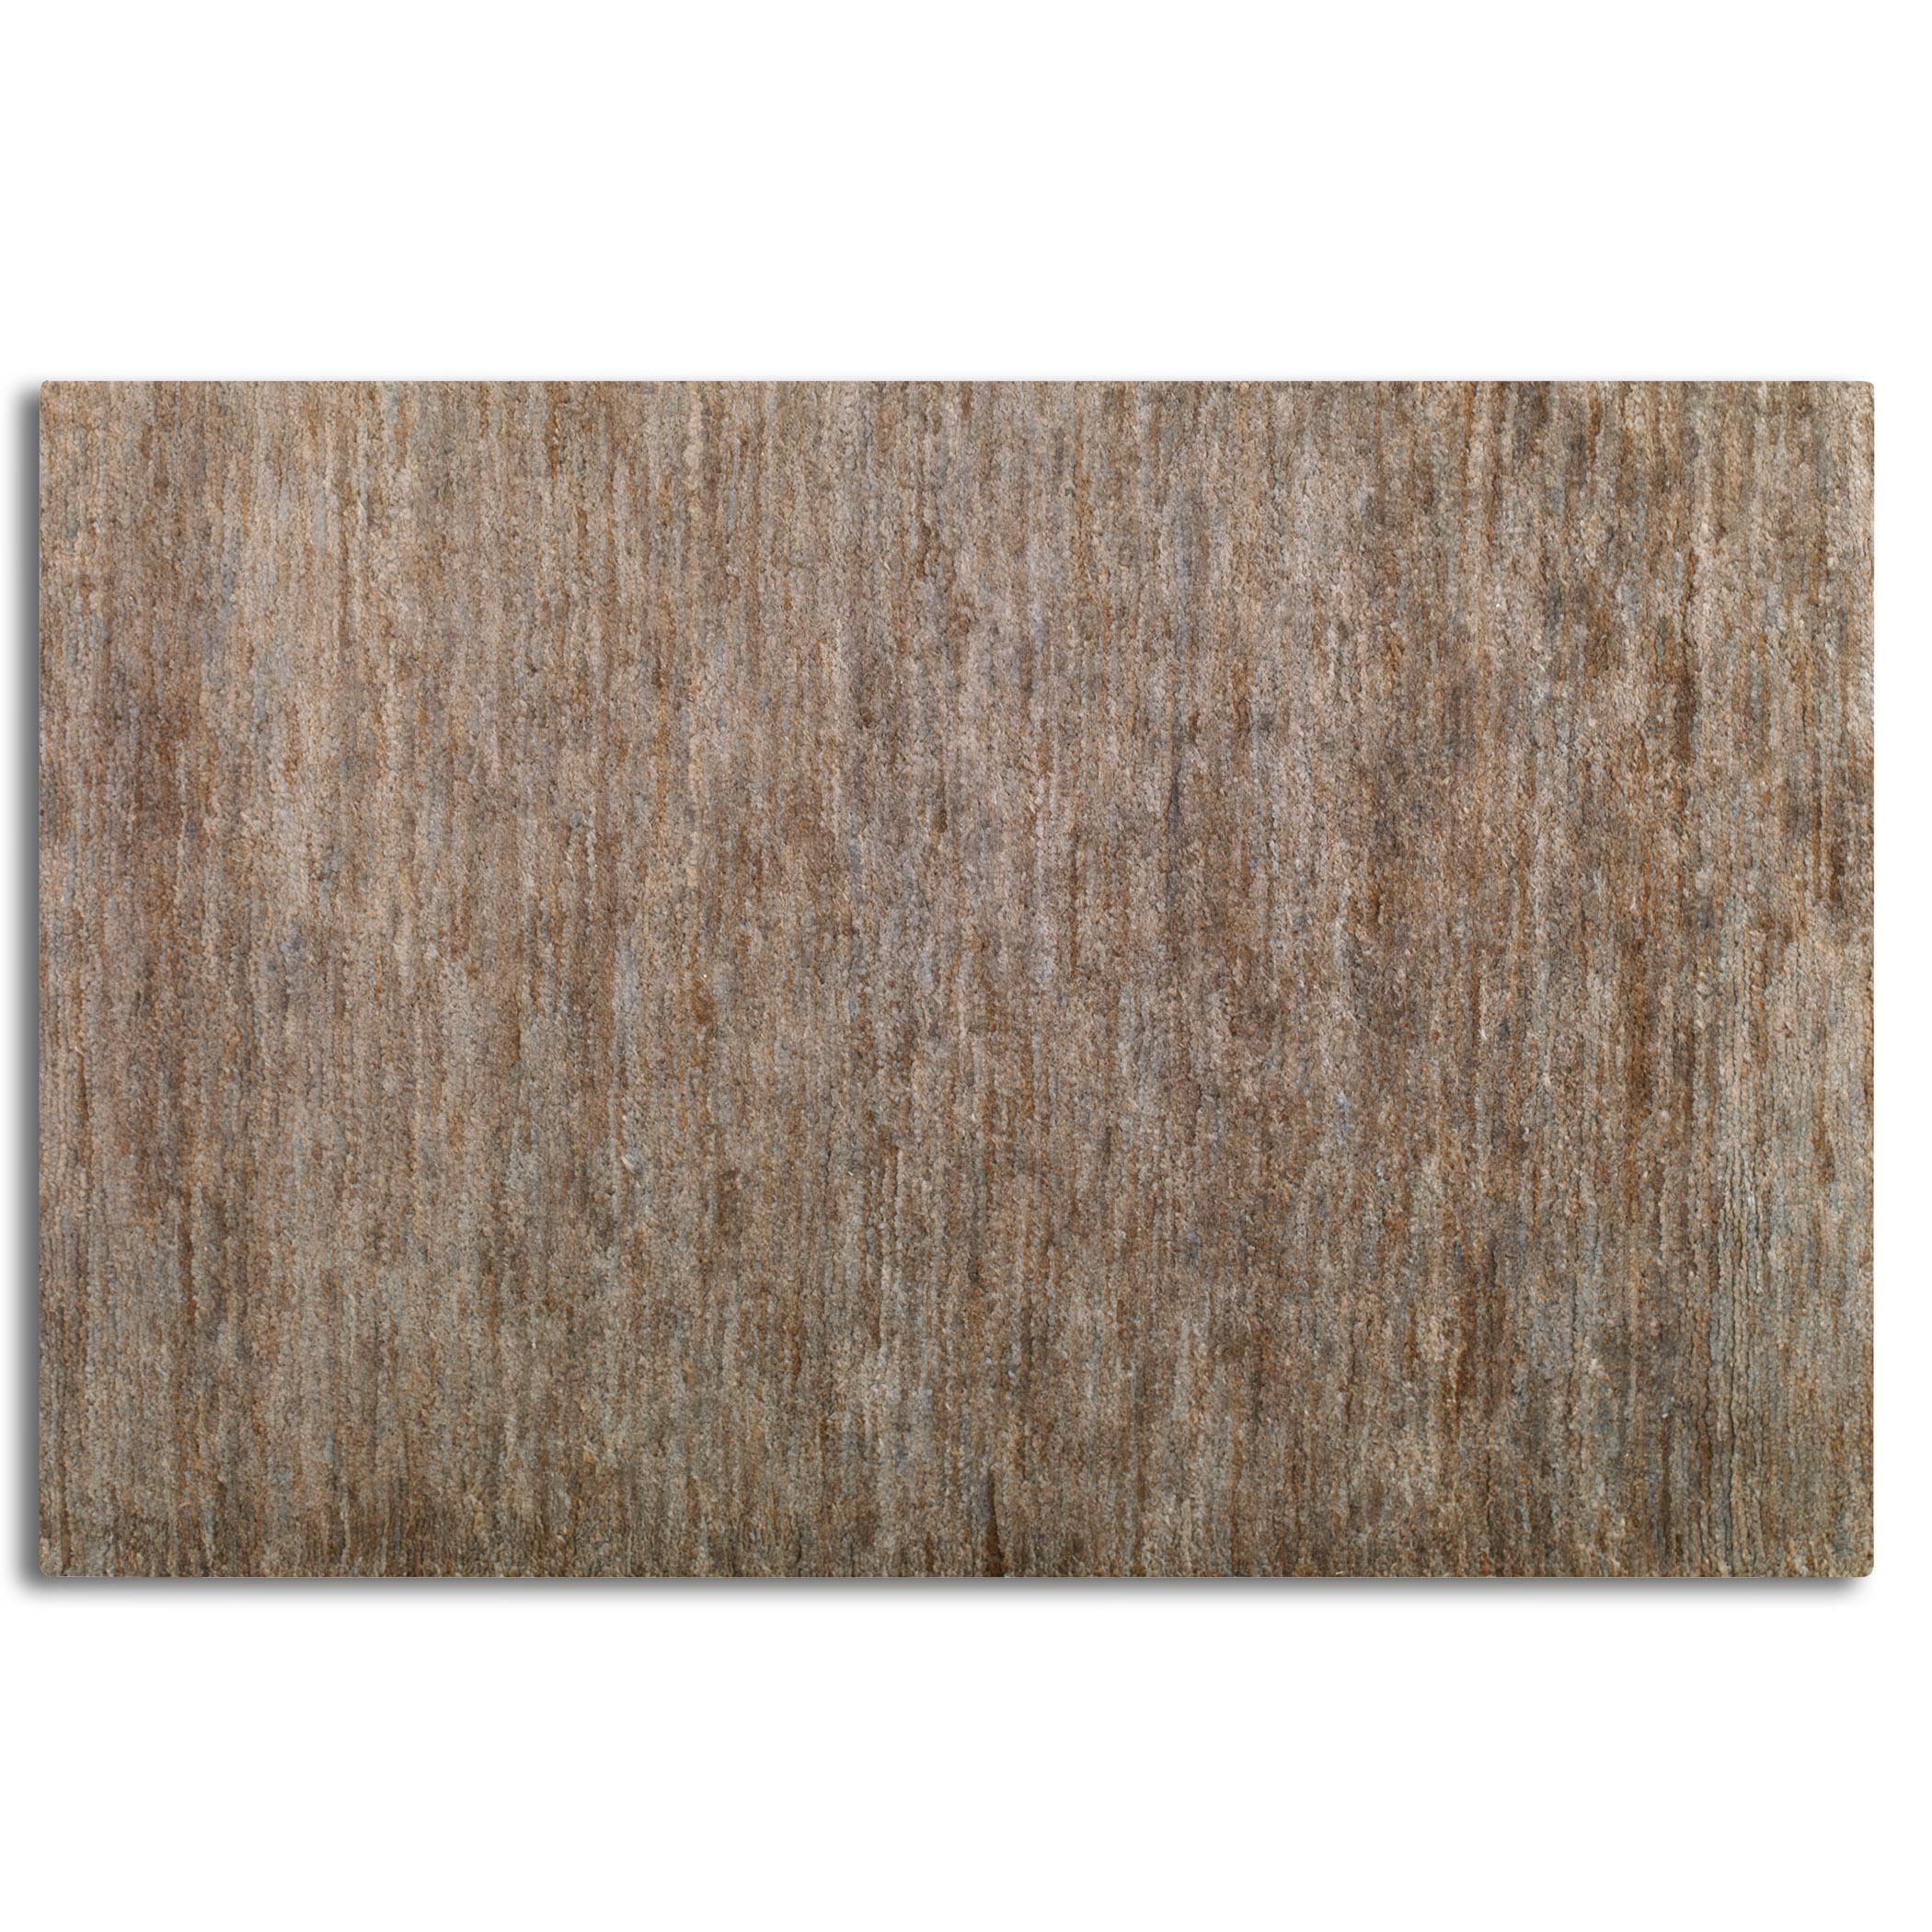 Uttermost Rugs Mounia 6 X 9 Rug - Rust Blue  - Item Number: 70022-6